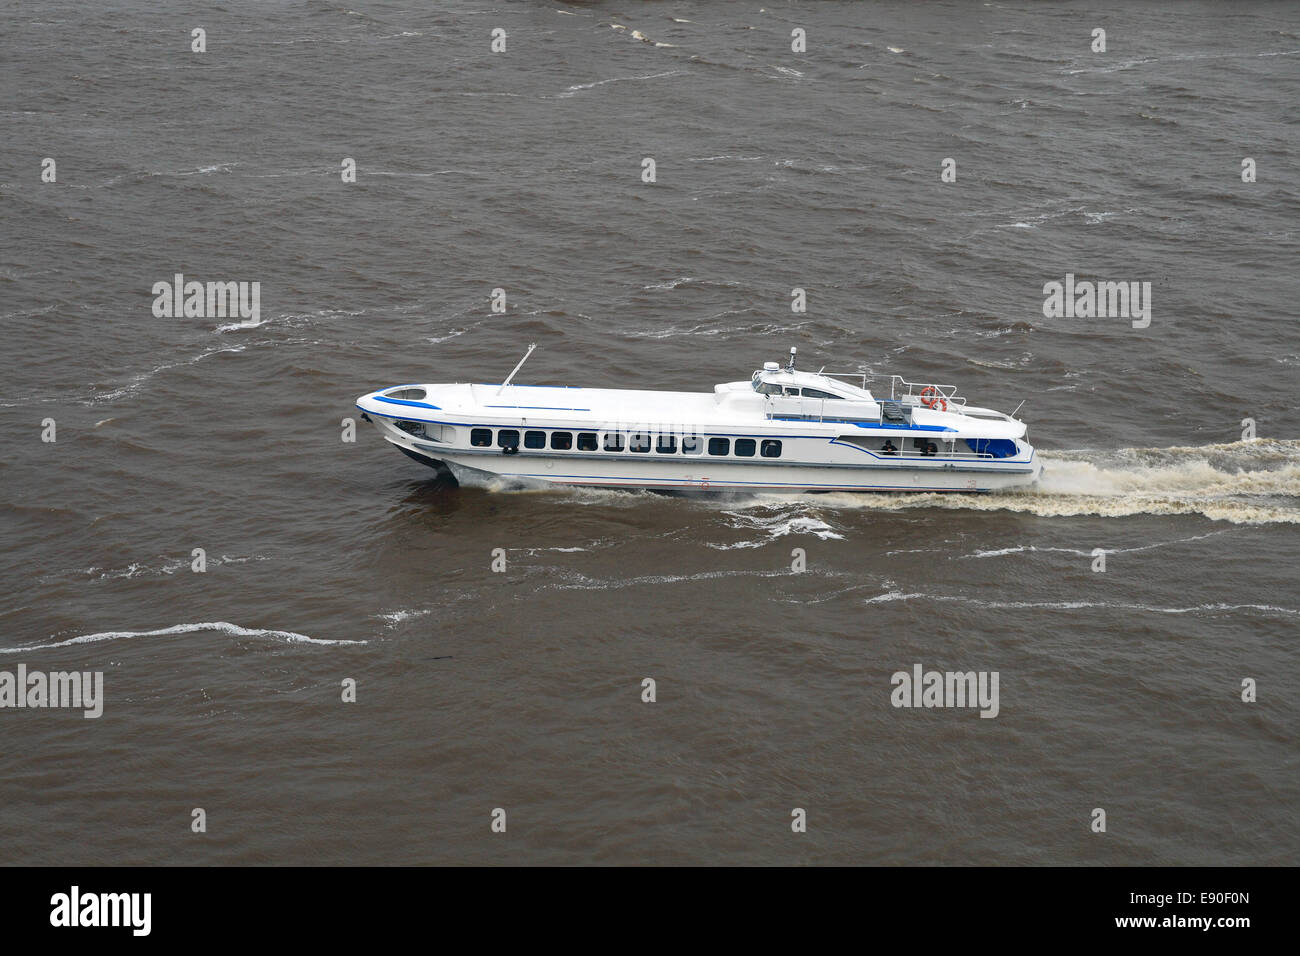 The passenger boat moves on the river - Stock Image